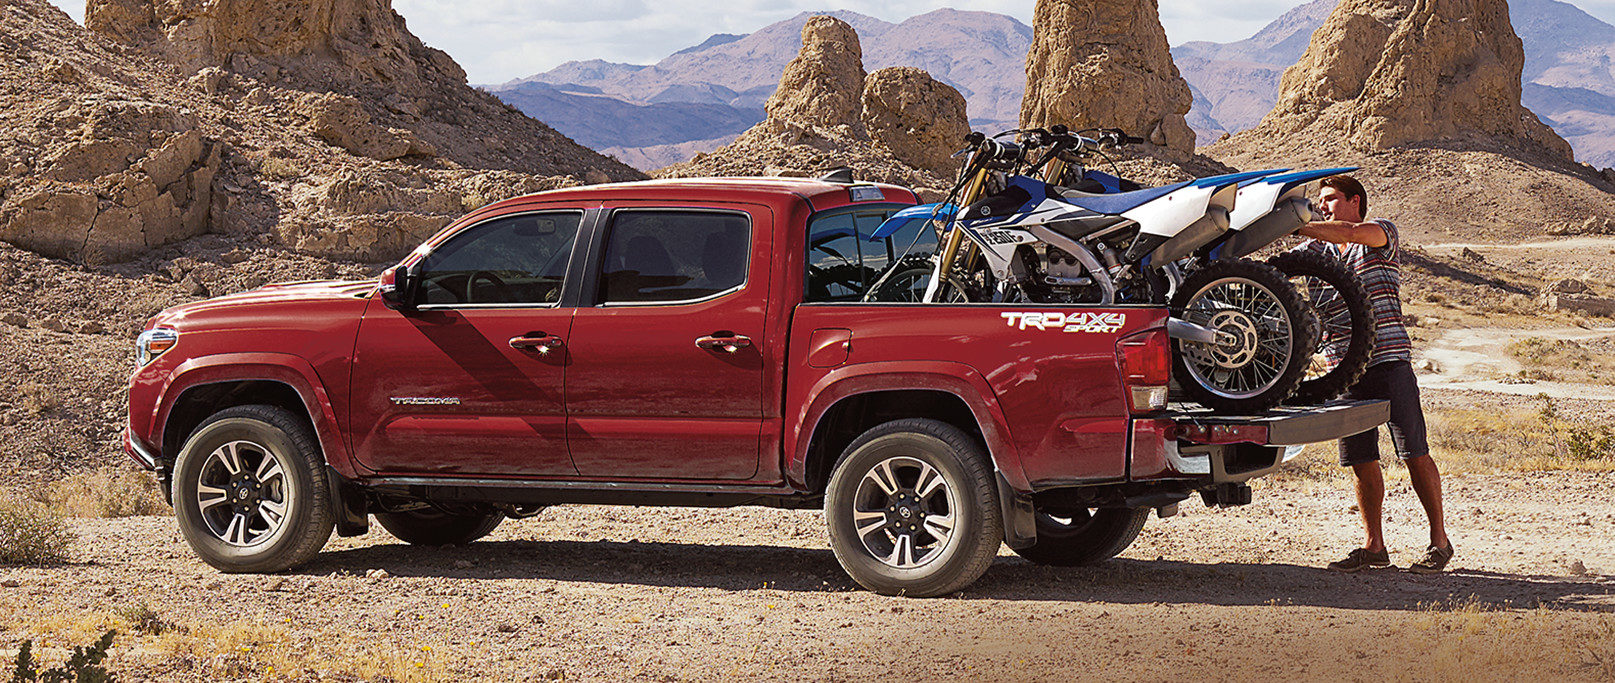 The 2019 Toyota Tacoma Pickup is Here! | Collingwood Toyota